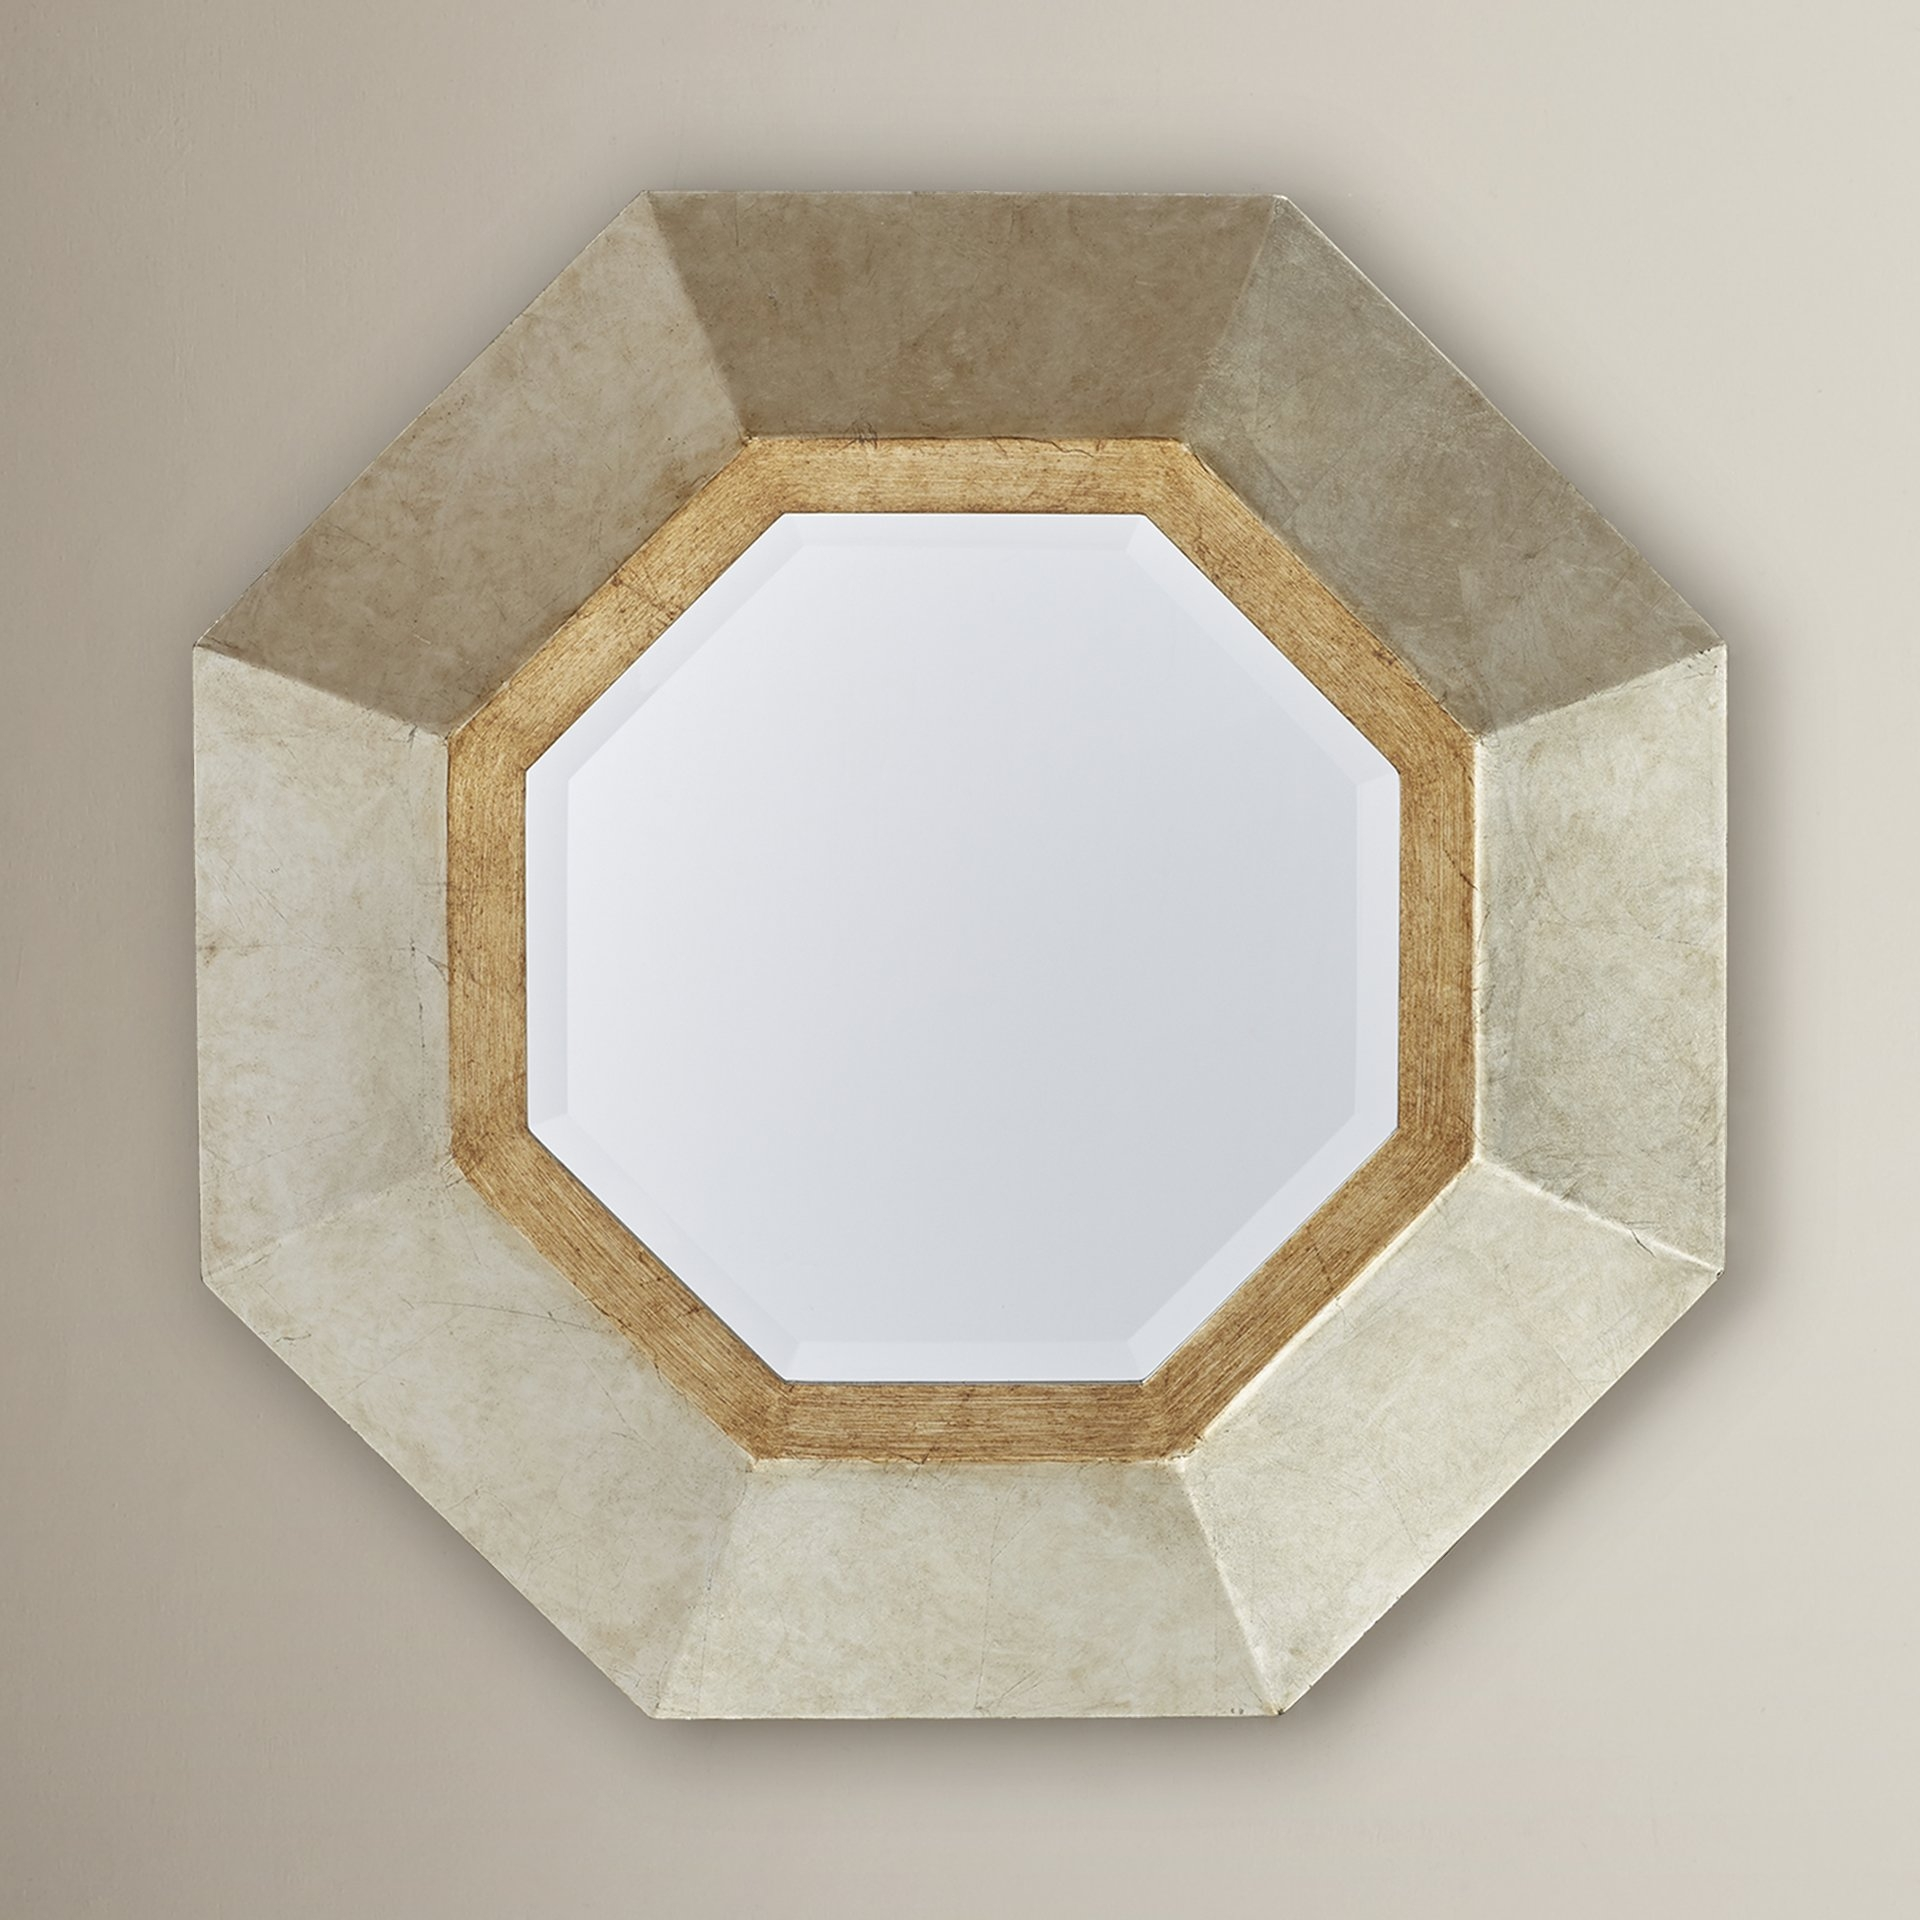 Quatrefoil Octagon Framed Wall Mirror